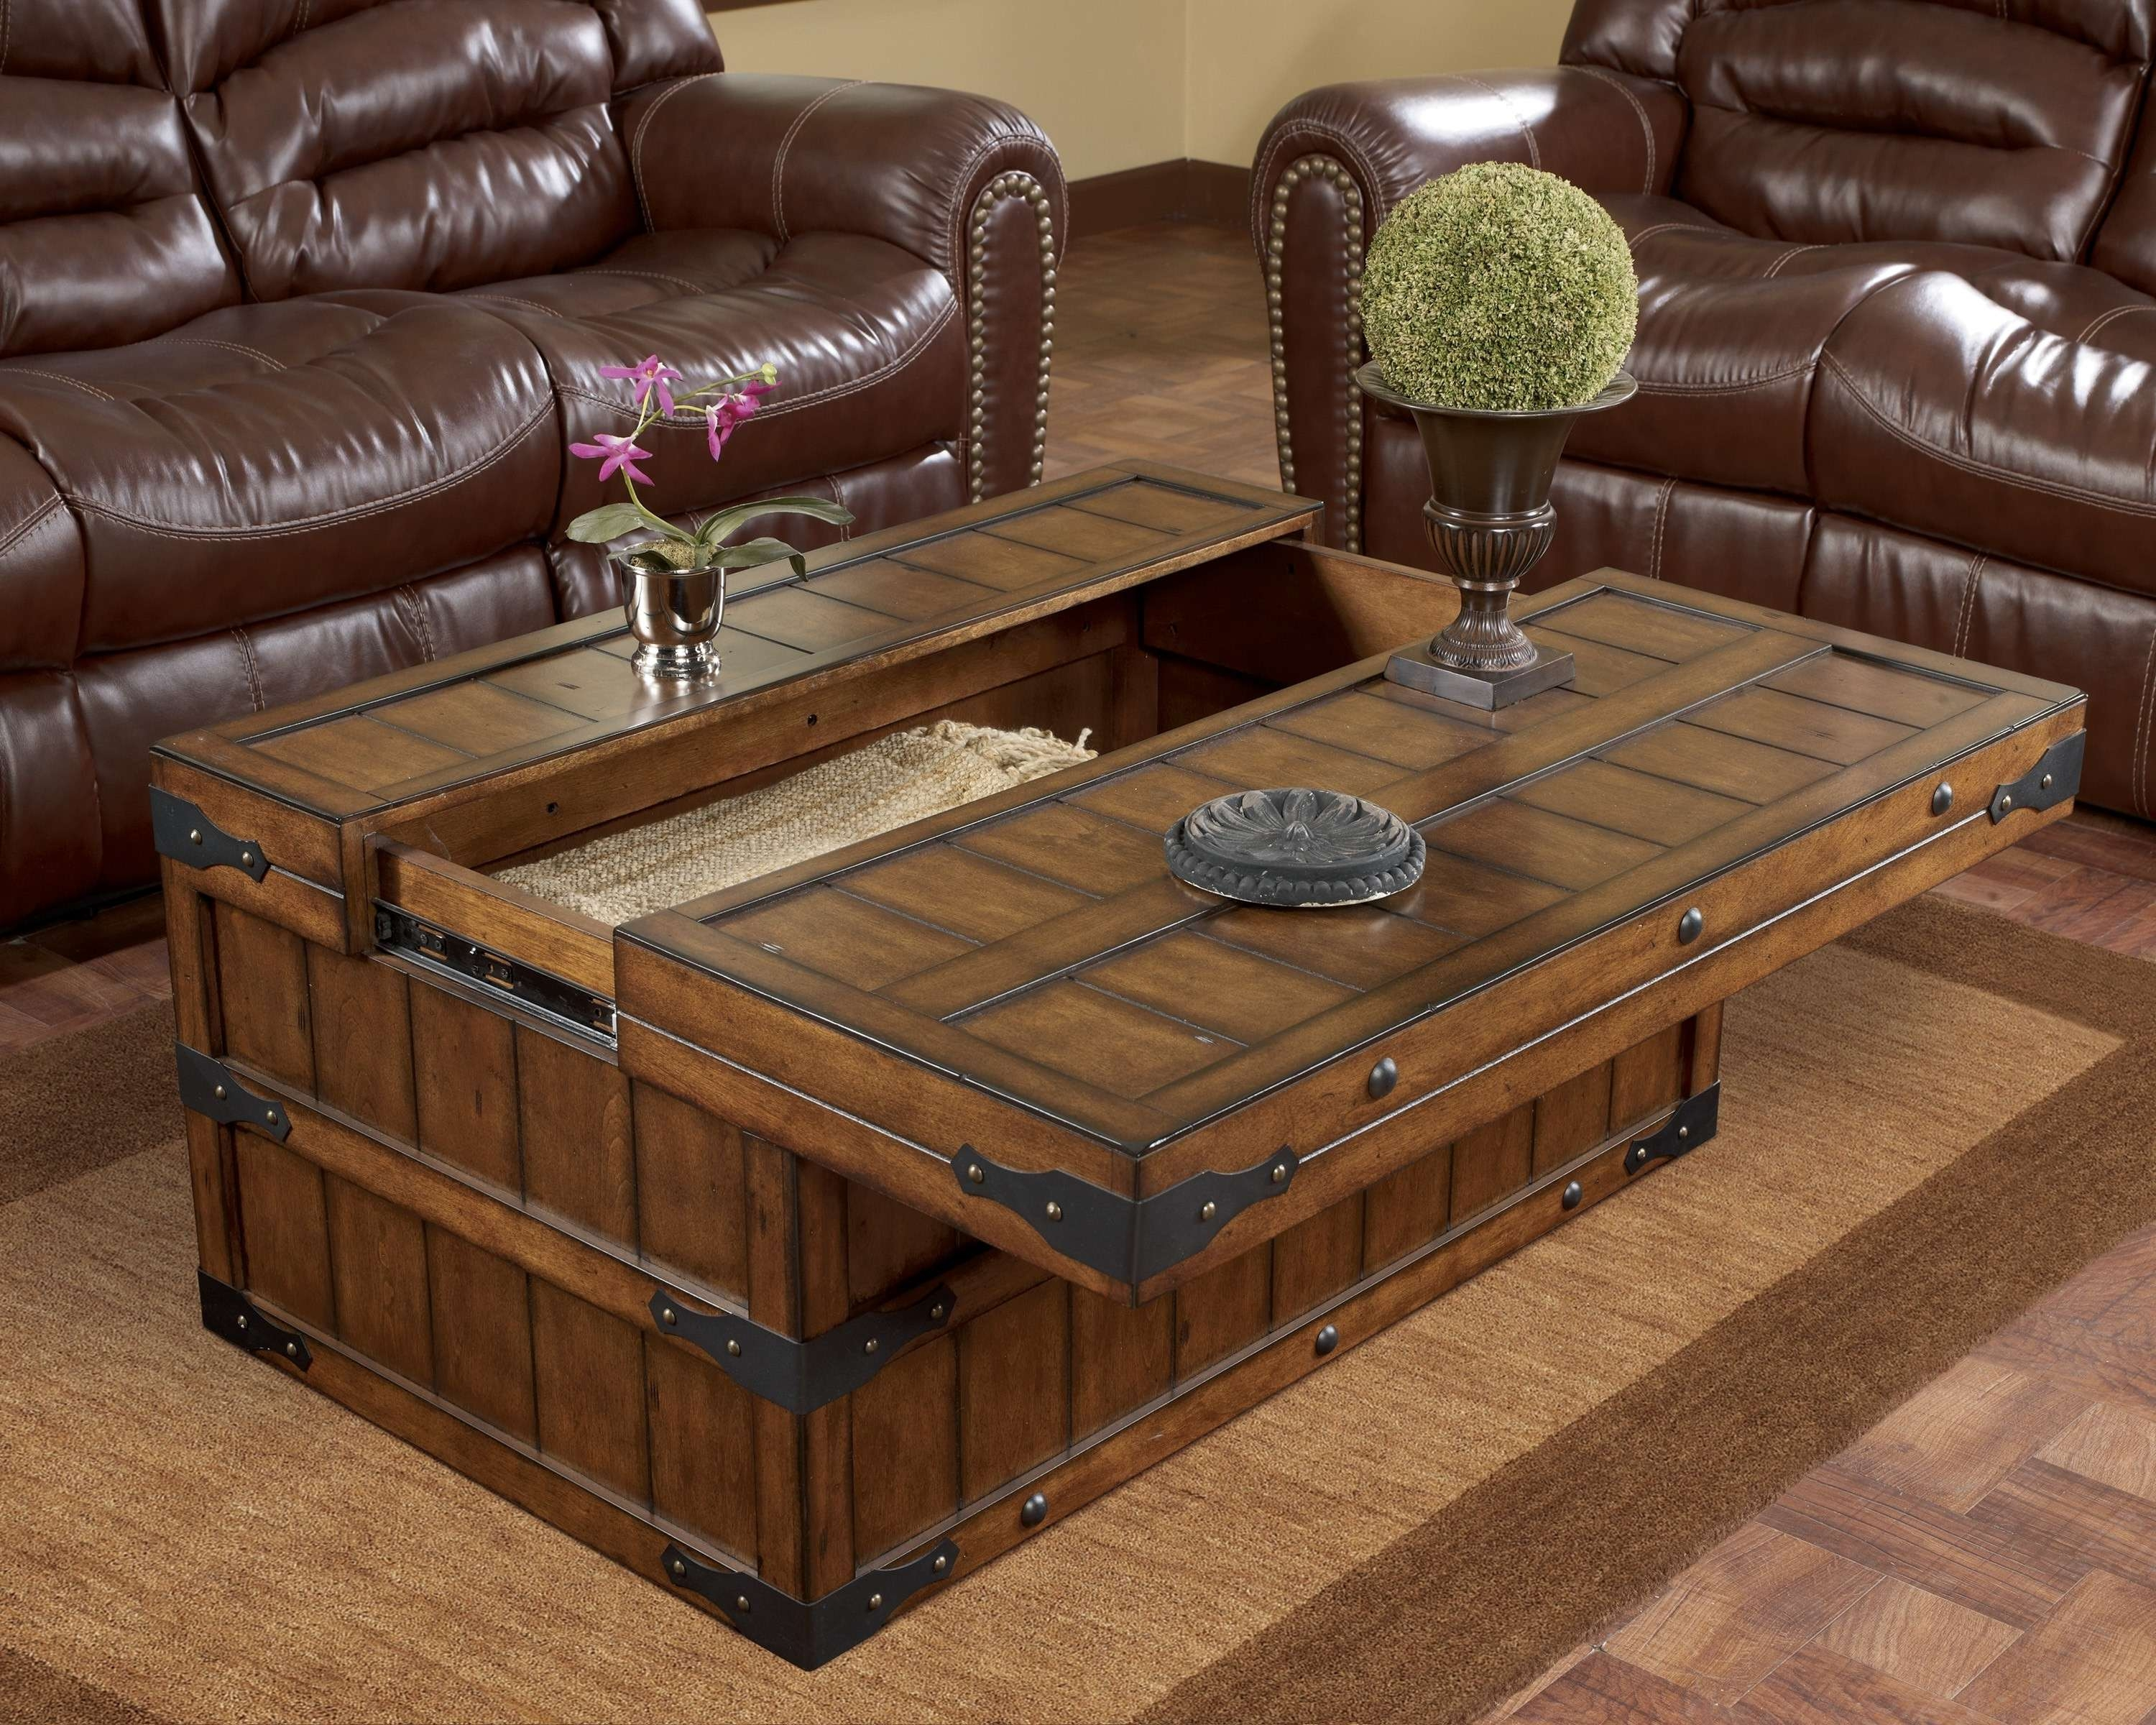 Well Known Coffee Tables With Baskets Underneath Throughout Coffee Table With Baskets Underneath / Coffee Tables / Thippo (View 16 of 20)